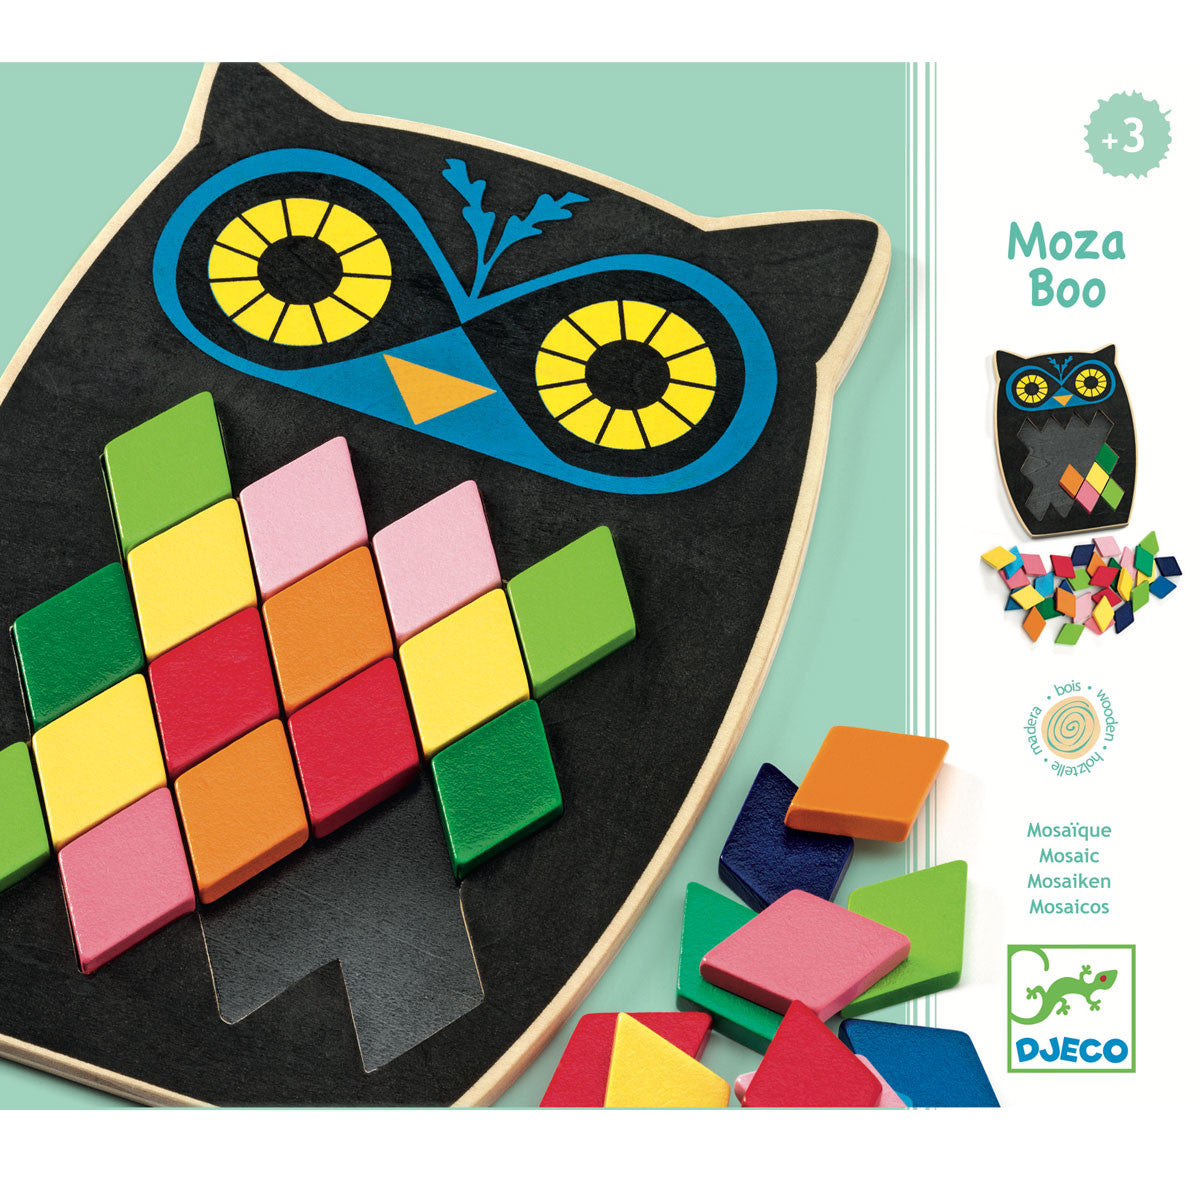 Djeco Mosaic Puzzle  Mosa Boo - Djeco - Little Earth Nest - 3